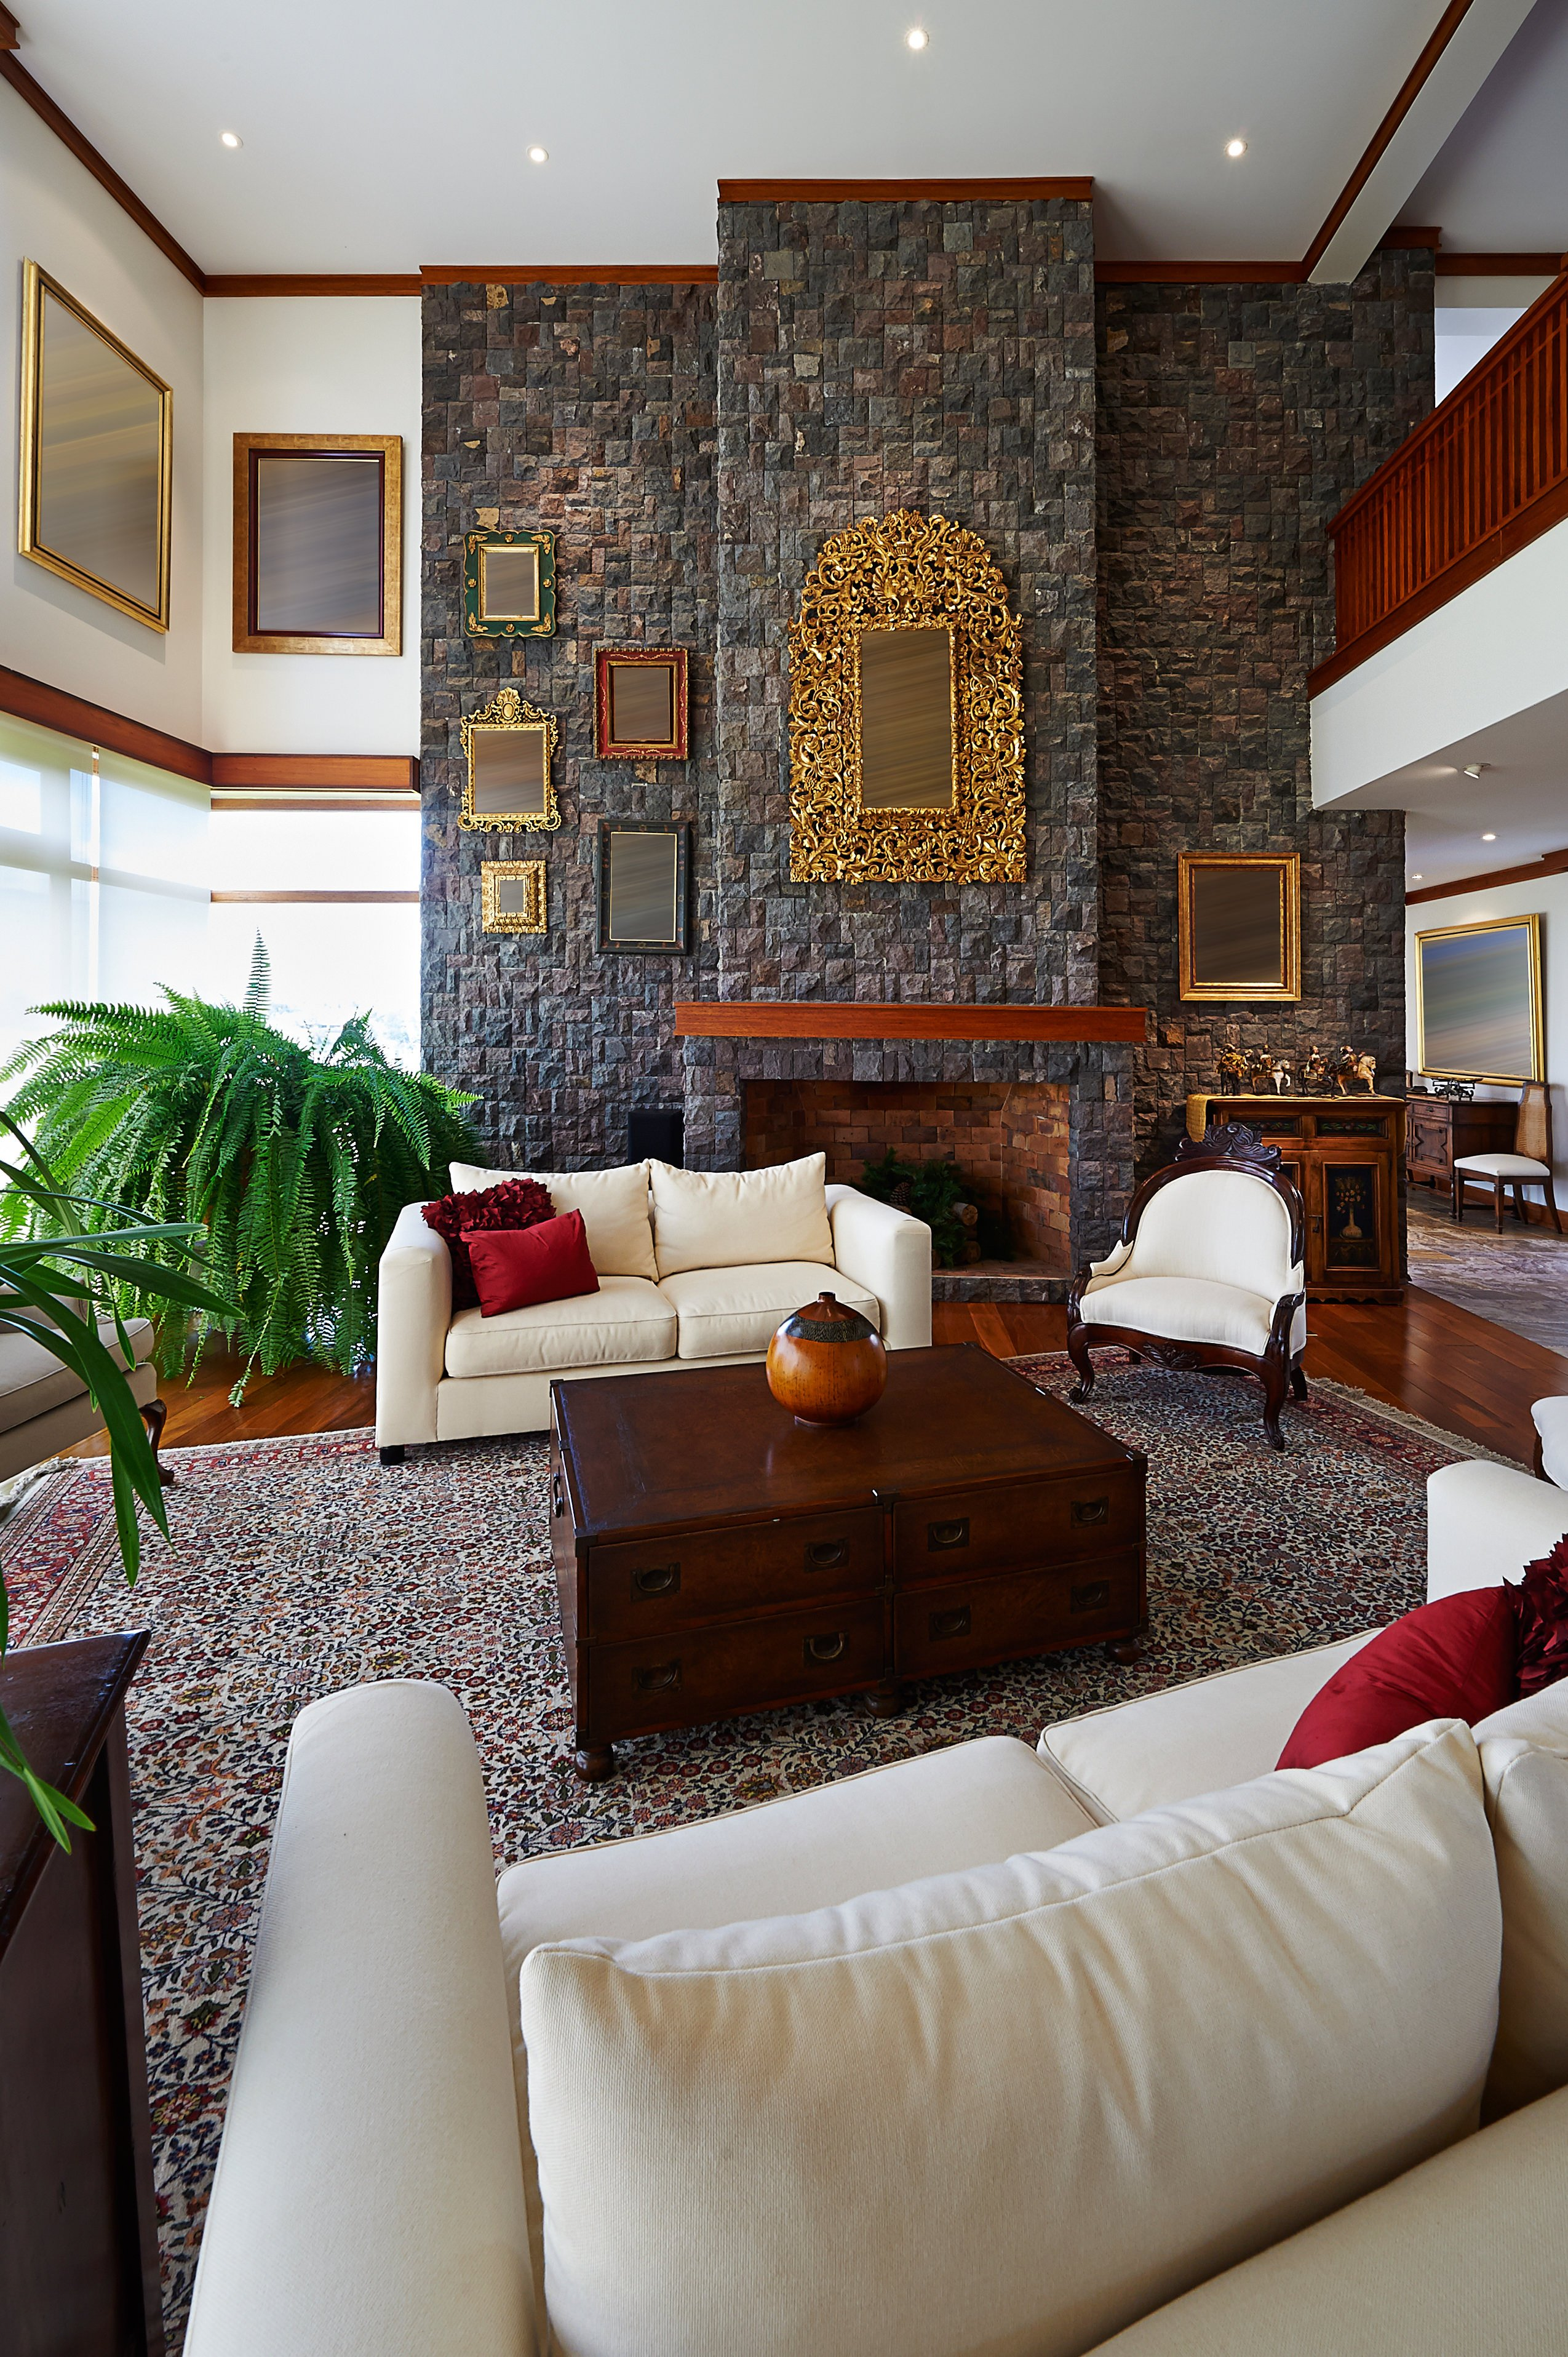 This living space has stunning walls and a large fireplace, along with white seats and a large area rug.